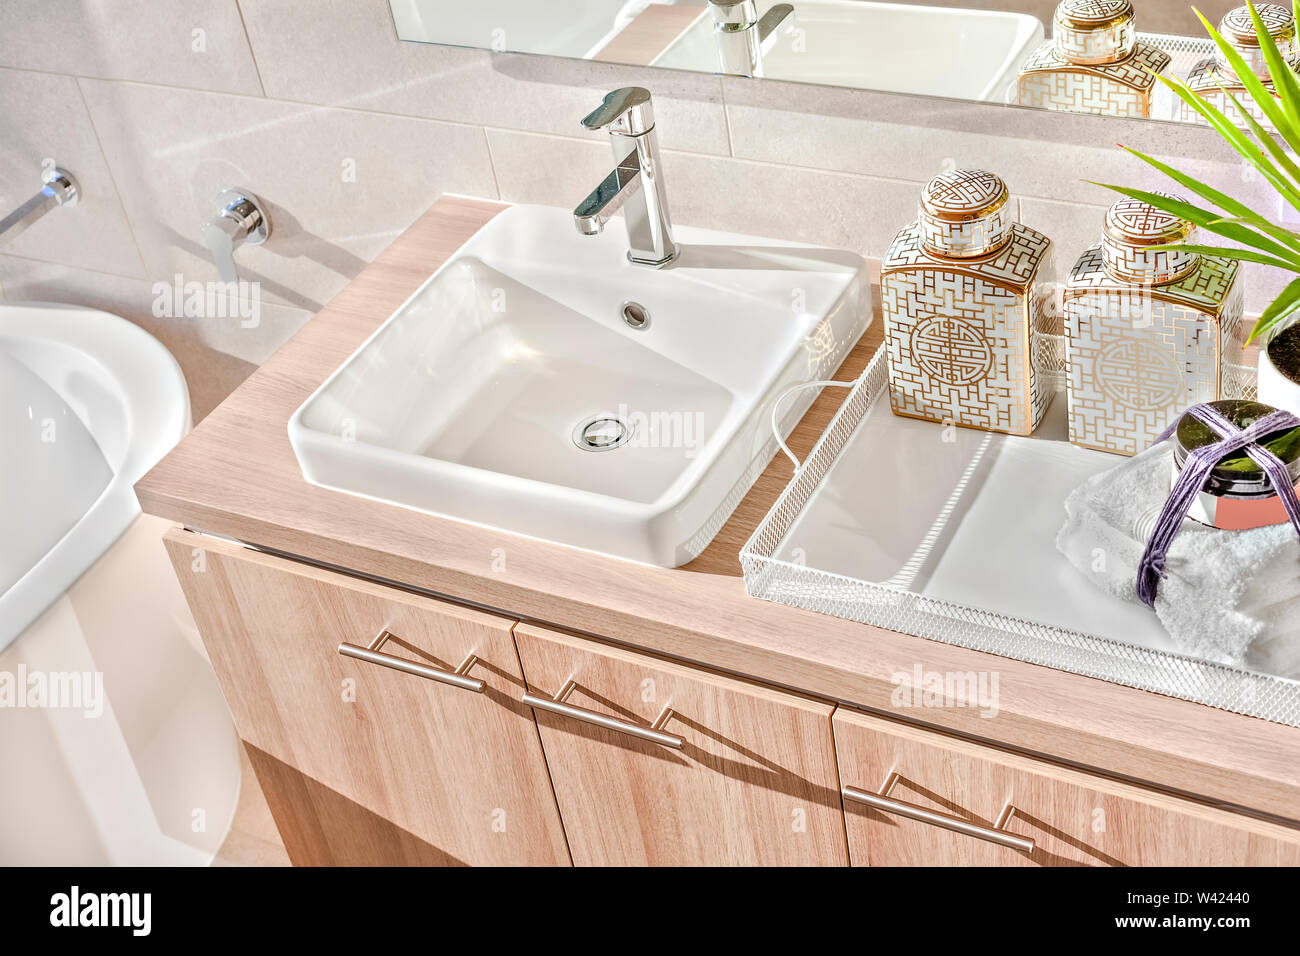 https www alamy com top view of a silver taps and white sink on the wooden counter with soap and towel under the mirror near tub image260661296 html